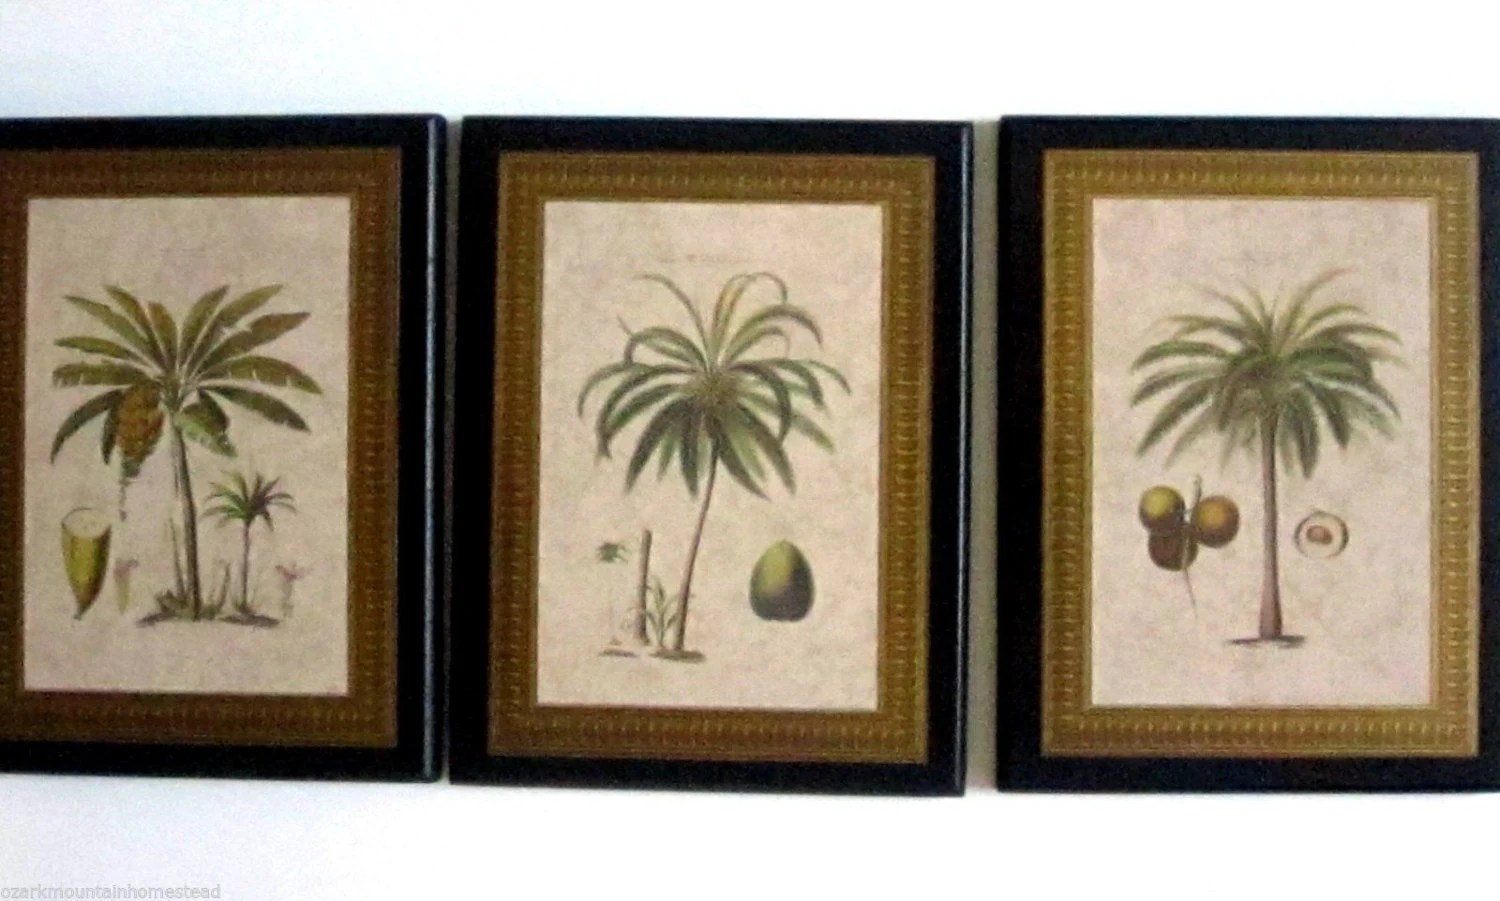 Palm Trees In Gold Frames Wall Decor Plaques Tropical Or